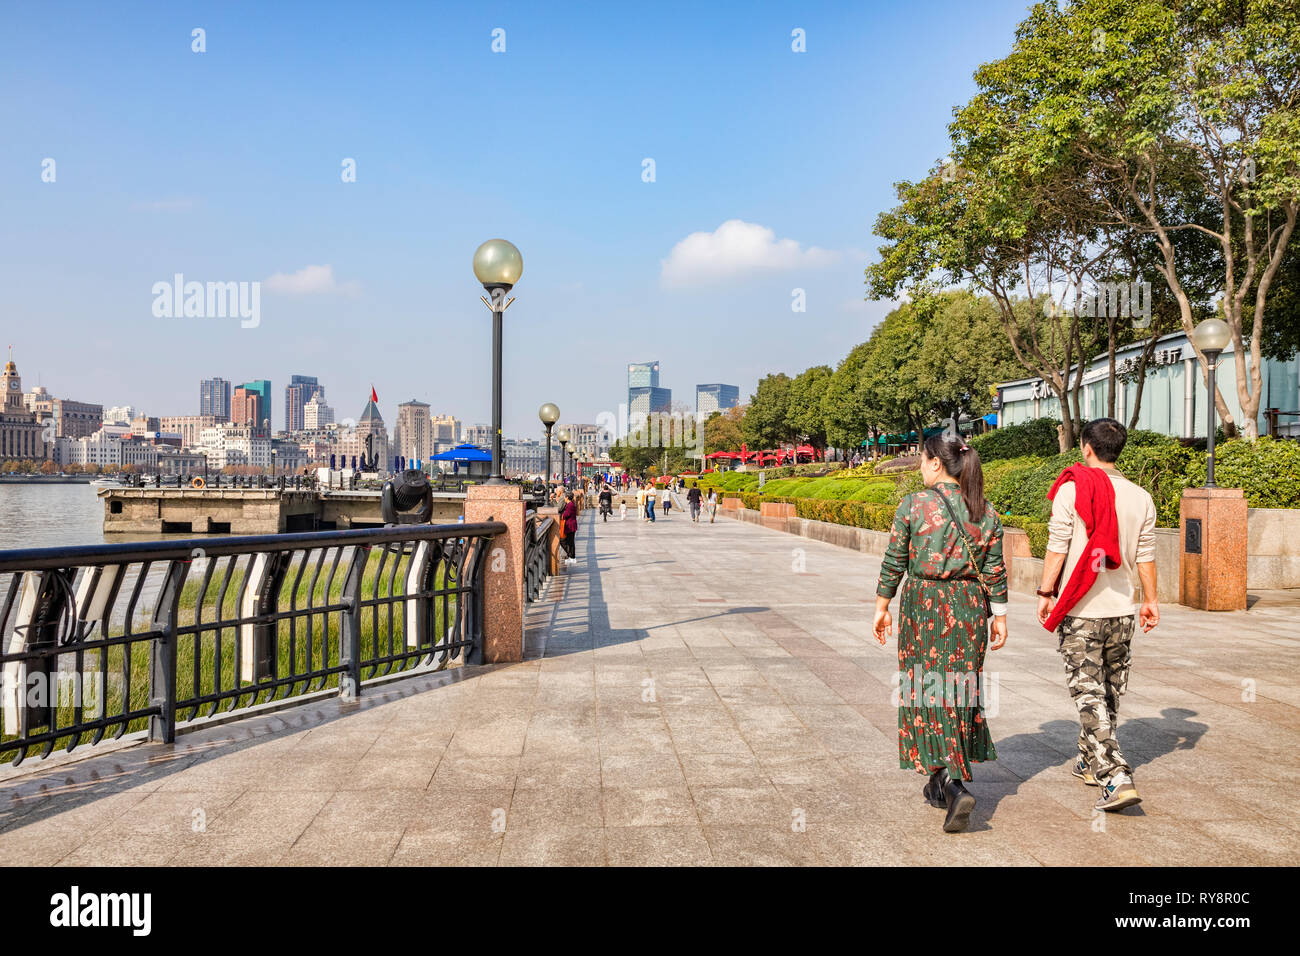 1 December 2018: Shanghai, China - Visitors walking on the bank of the Huangpu River on the Pudong side, opposite The Bund, Shanghai. Stock Photo